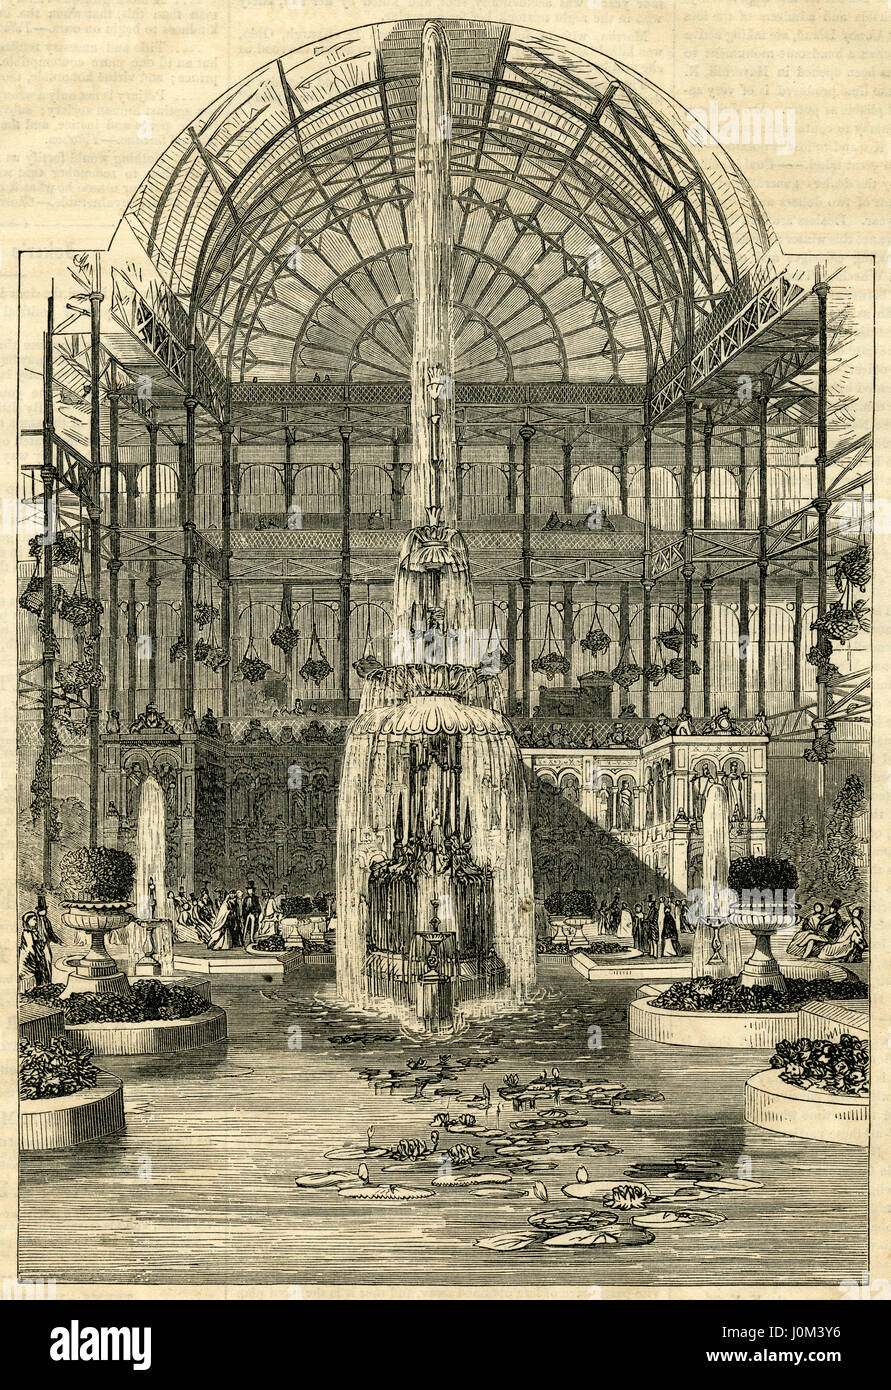 Antique 1854 engraving, 'Crystal Fountain at the Crystal Palace, Sydenham, England.' The Crystal Palace - Stock Image